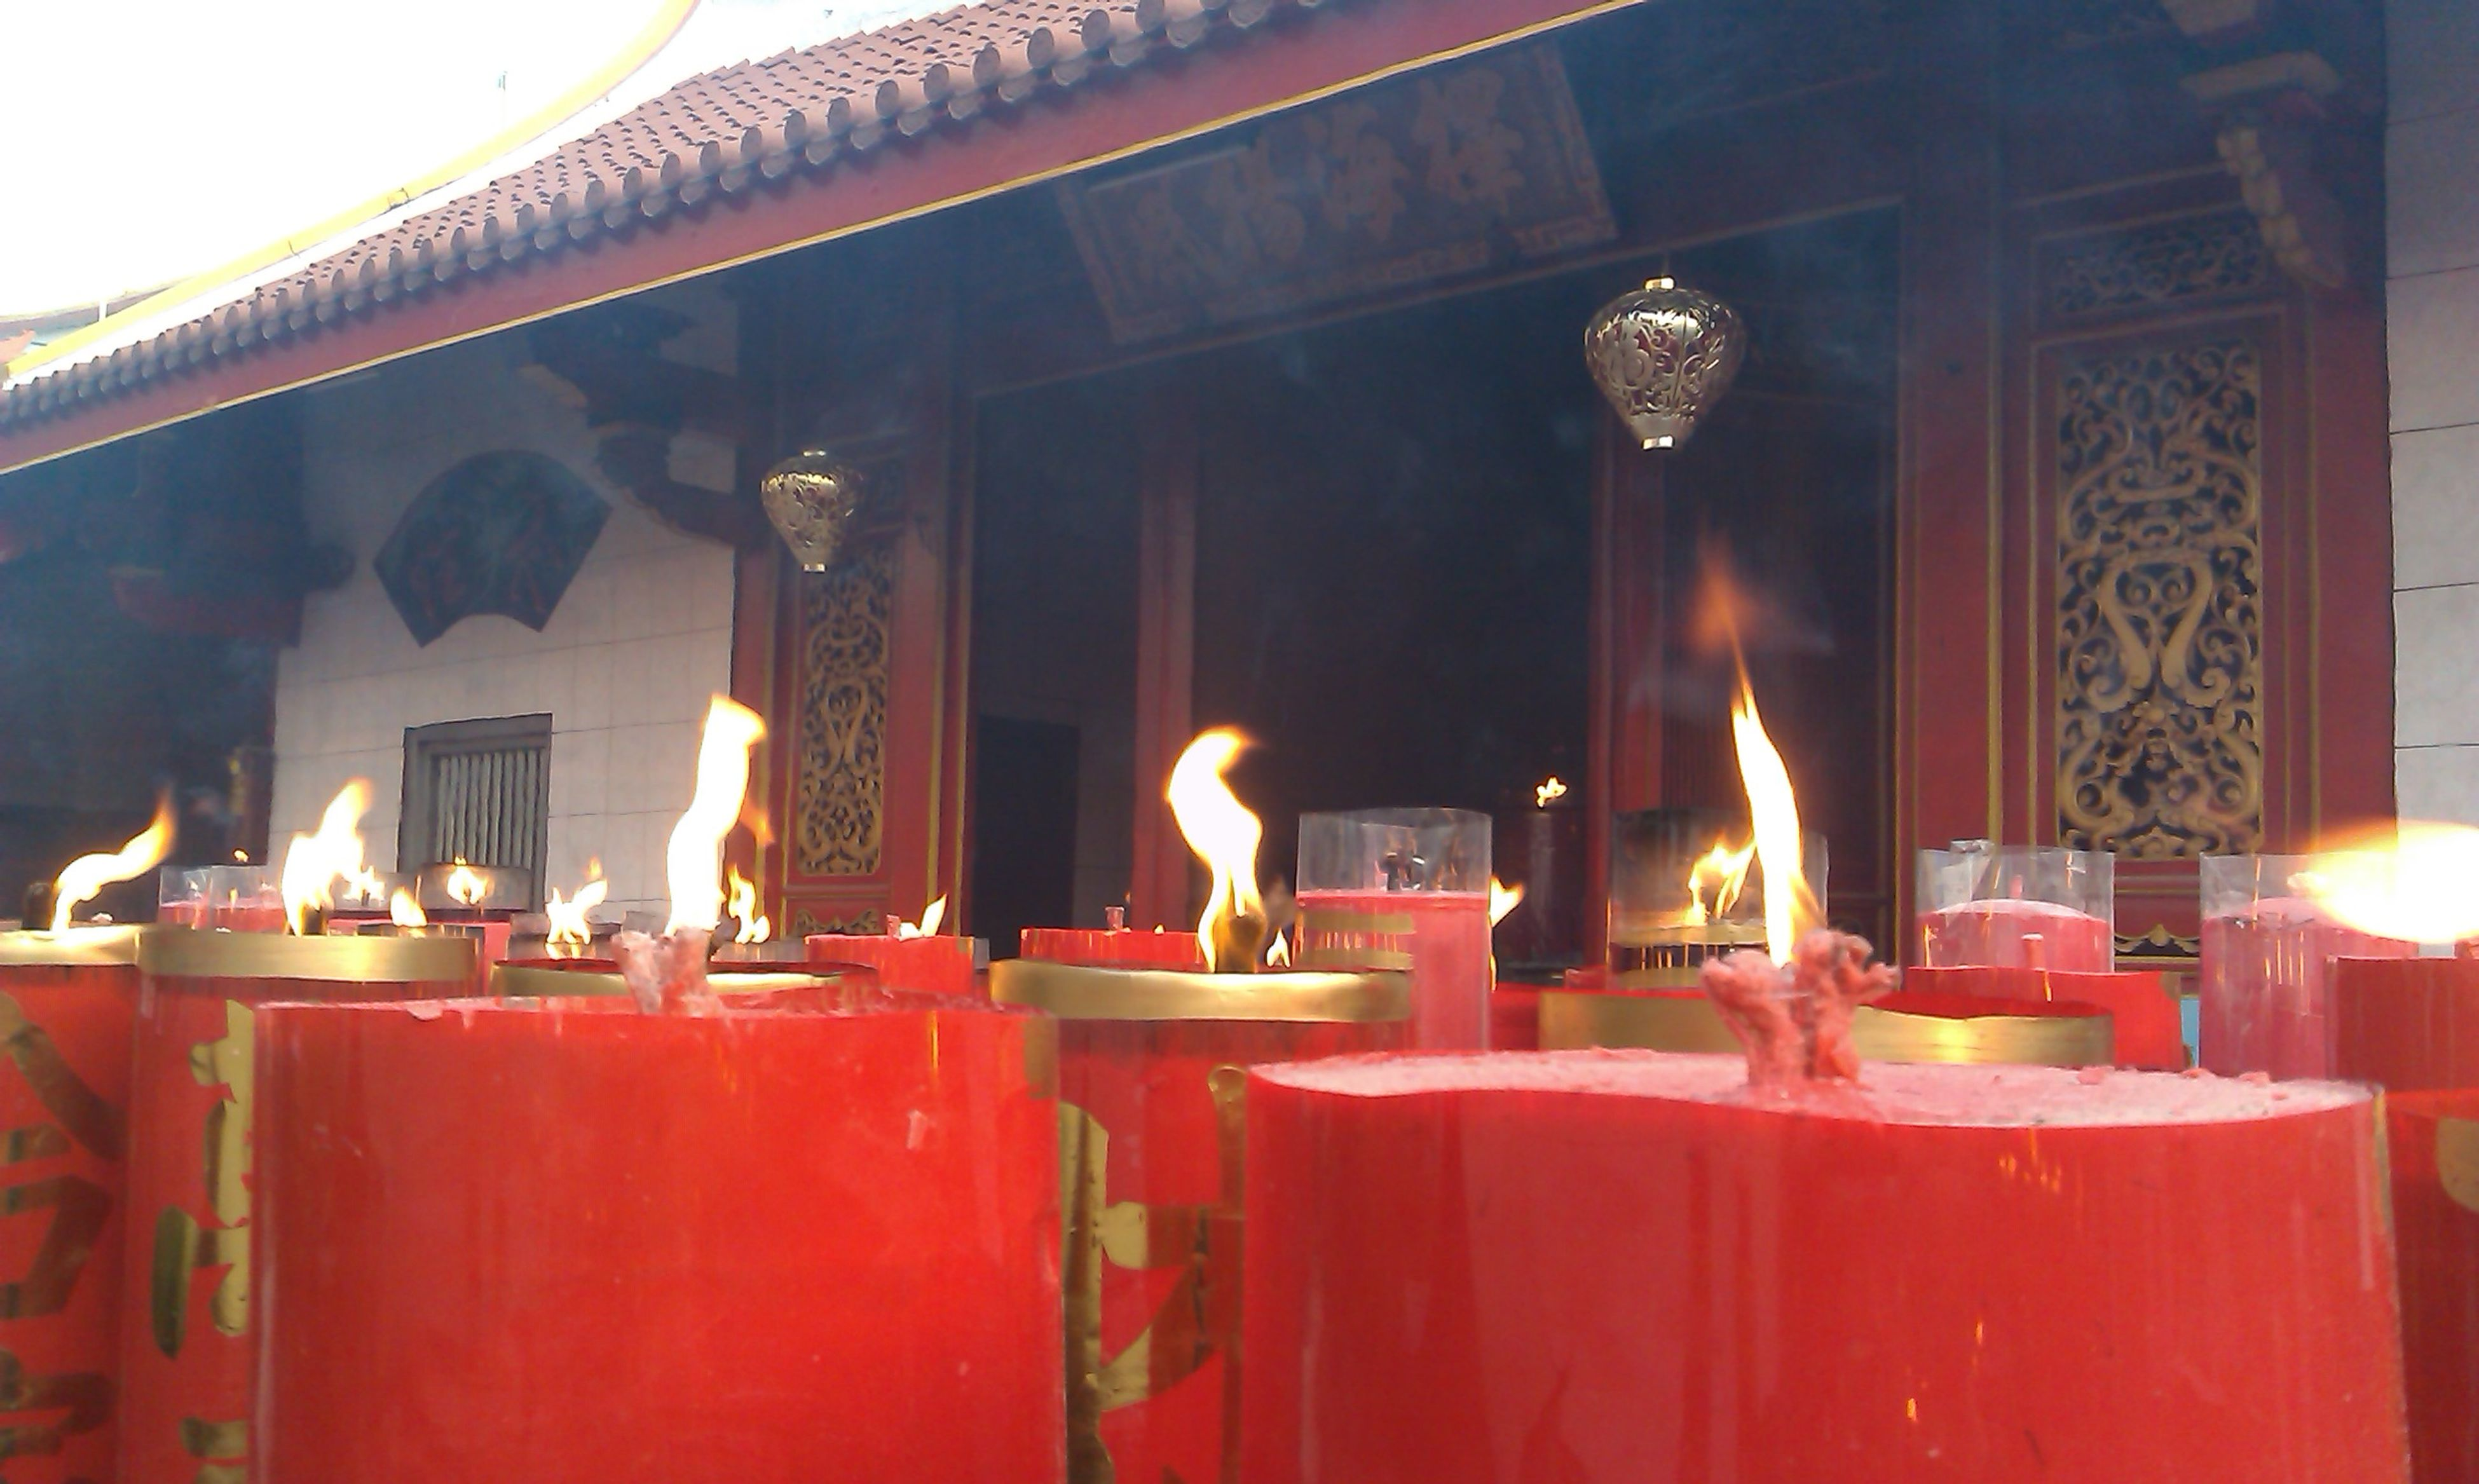 indoors, place of worship, religion, illuminated, spirituality, flame, burning, candle, built structure, architecture, temple - building, church, heat - temperature, fire - natural phenomenon, lit, glowing, no people, night